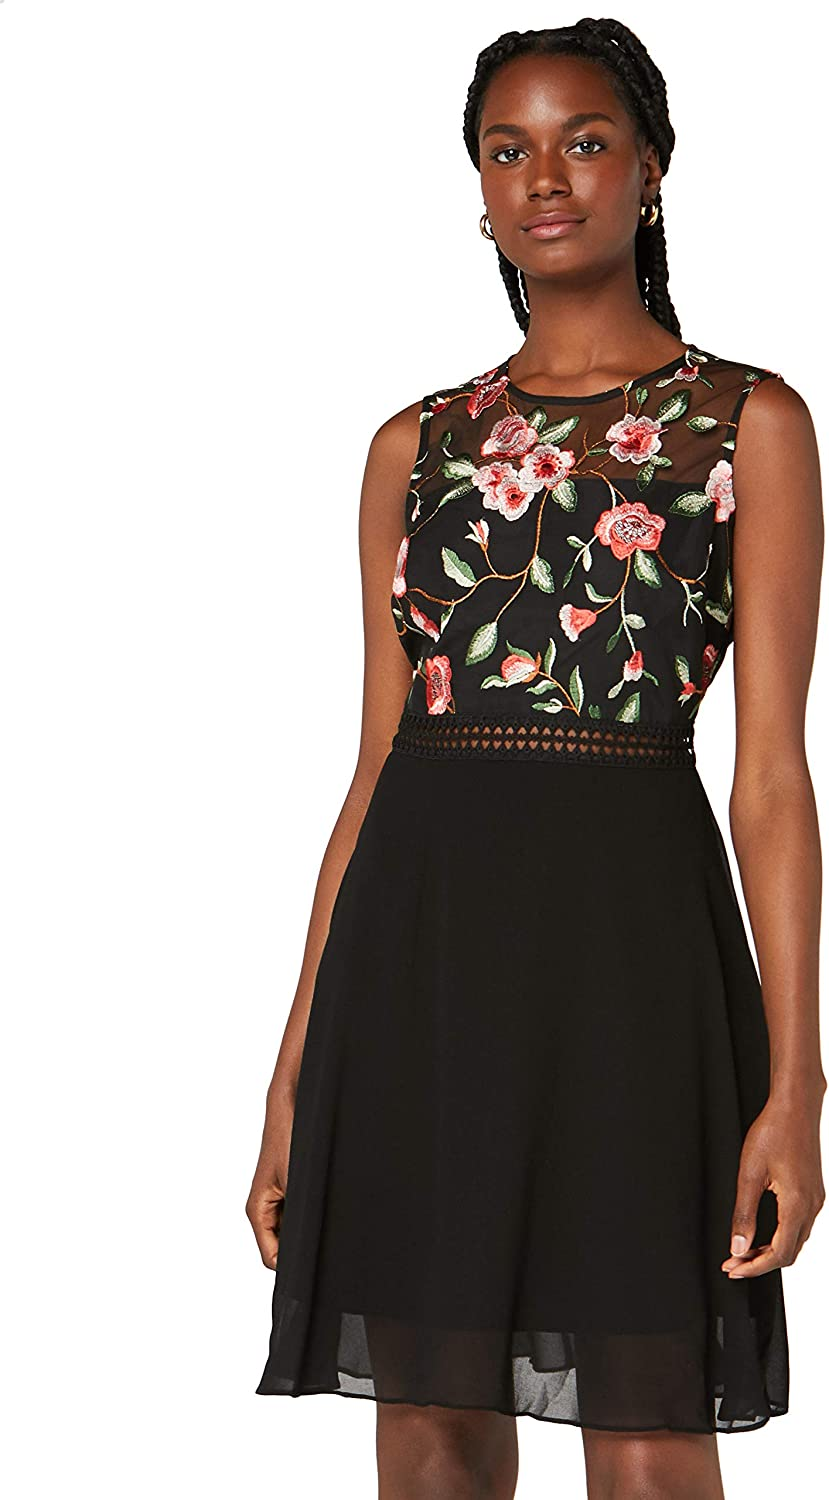 Amazon Brand - TRUTH FABLE Max 76% OFF Women's Discount is also underway Embroidered Rose Dress